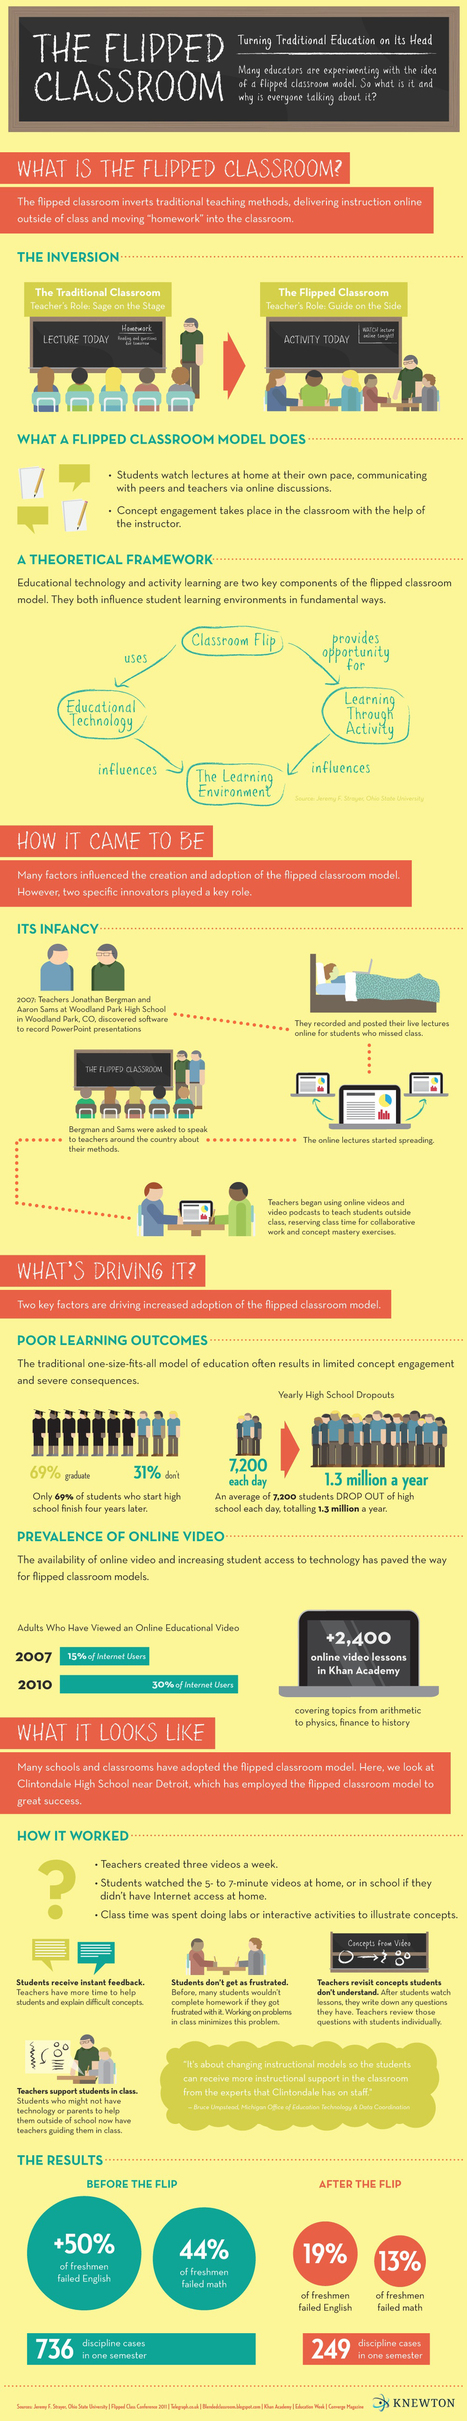 Data Display of the Day: The Flipped Classroom | Tweak Your Slides | Flipped Classroom in Education | Scoop.it